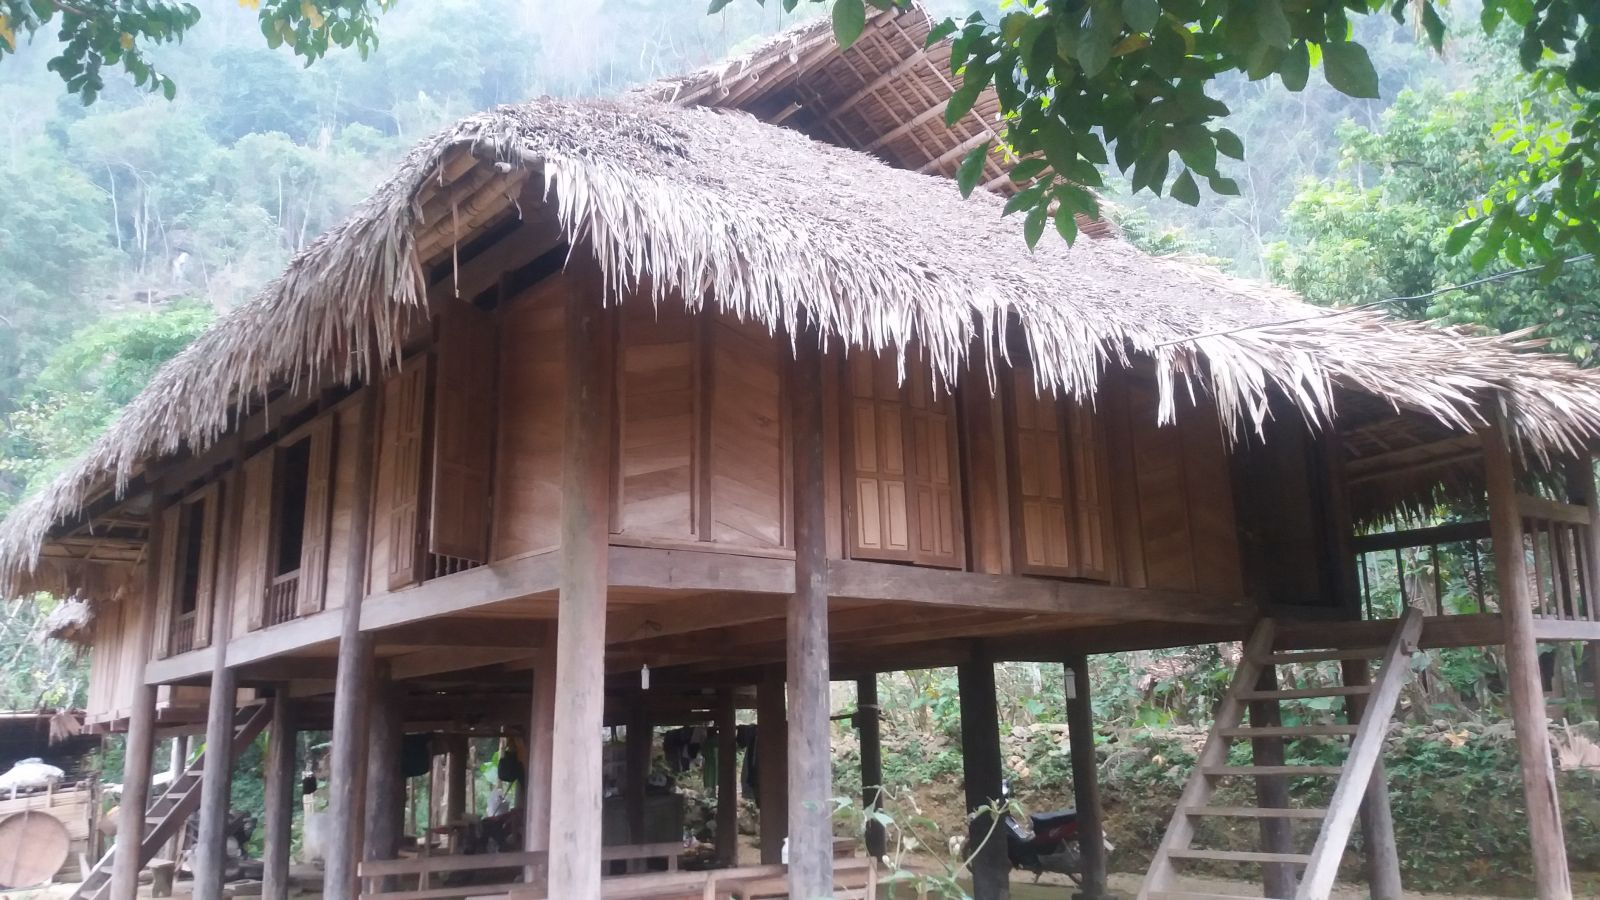 Pu-luong-nature-reserve-homestay